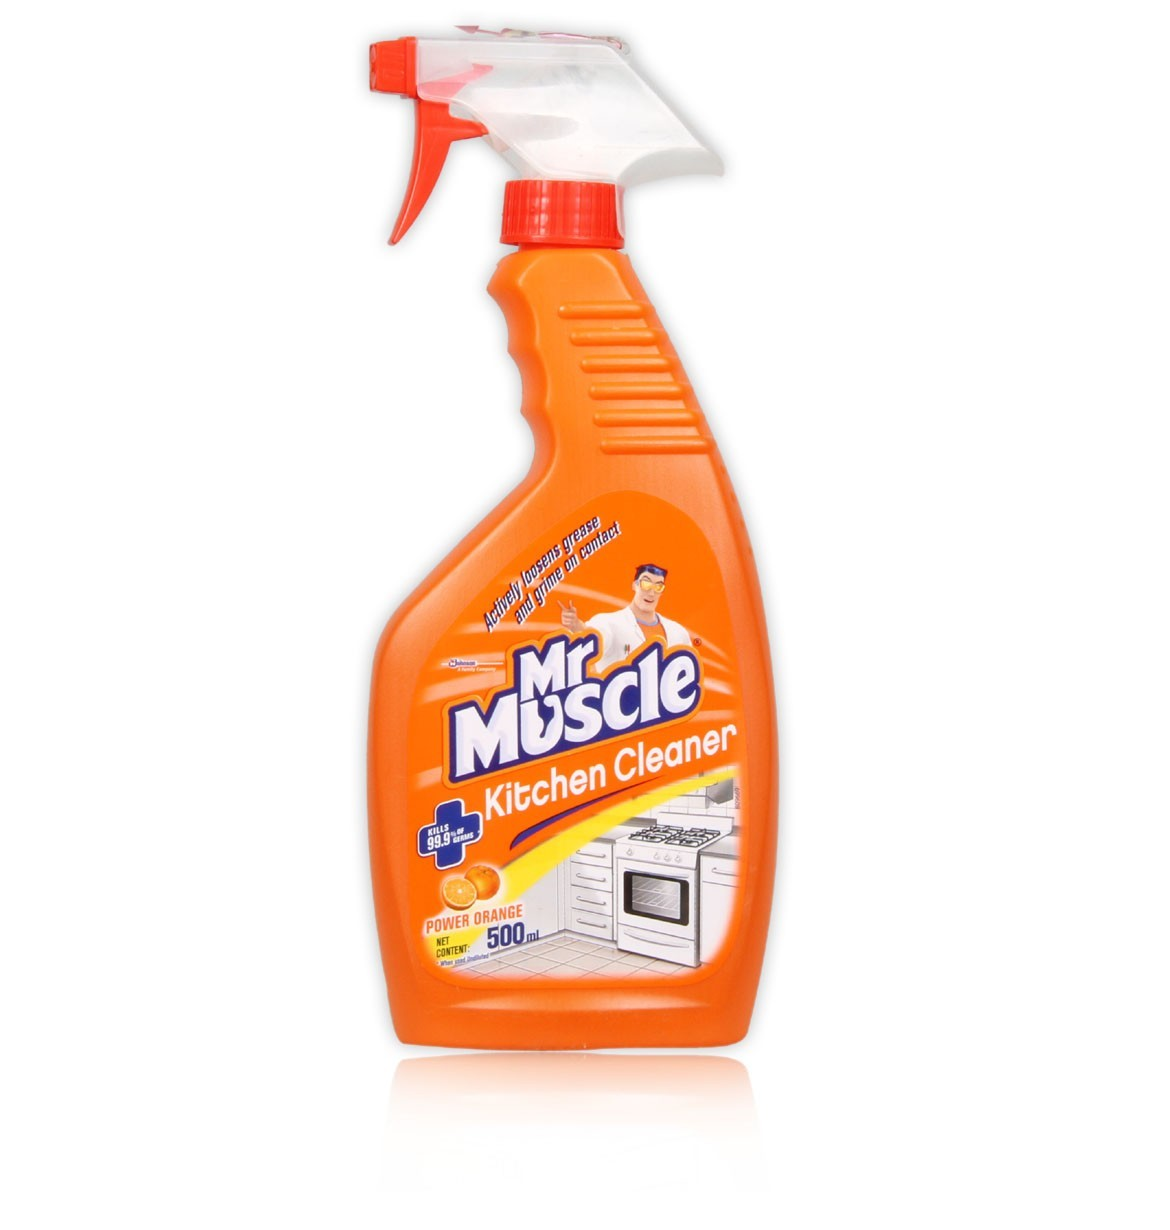 Mr muscle reviews mr muscle price complaints customer care mr muscle india - Cleaning products for kitchen ...